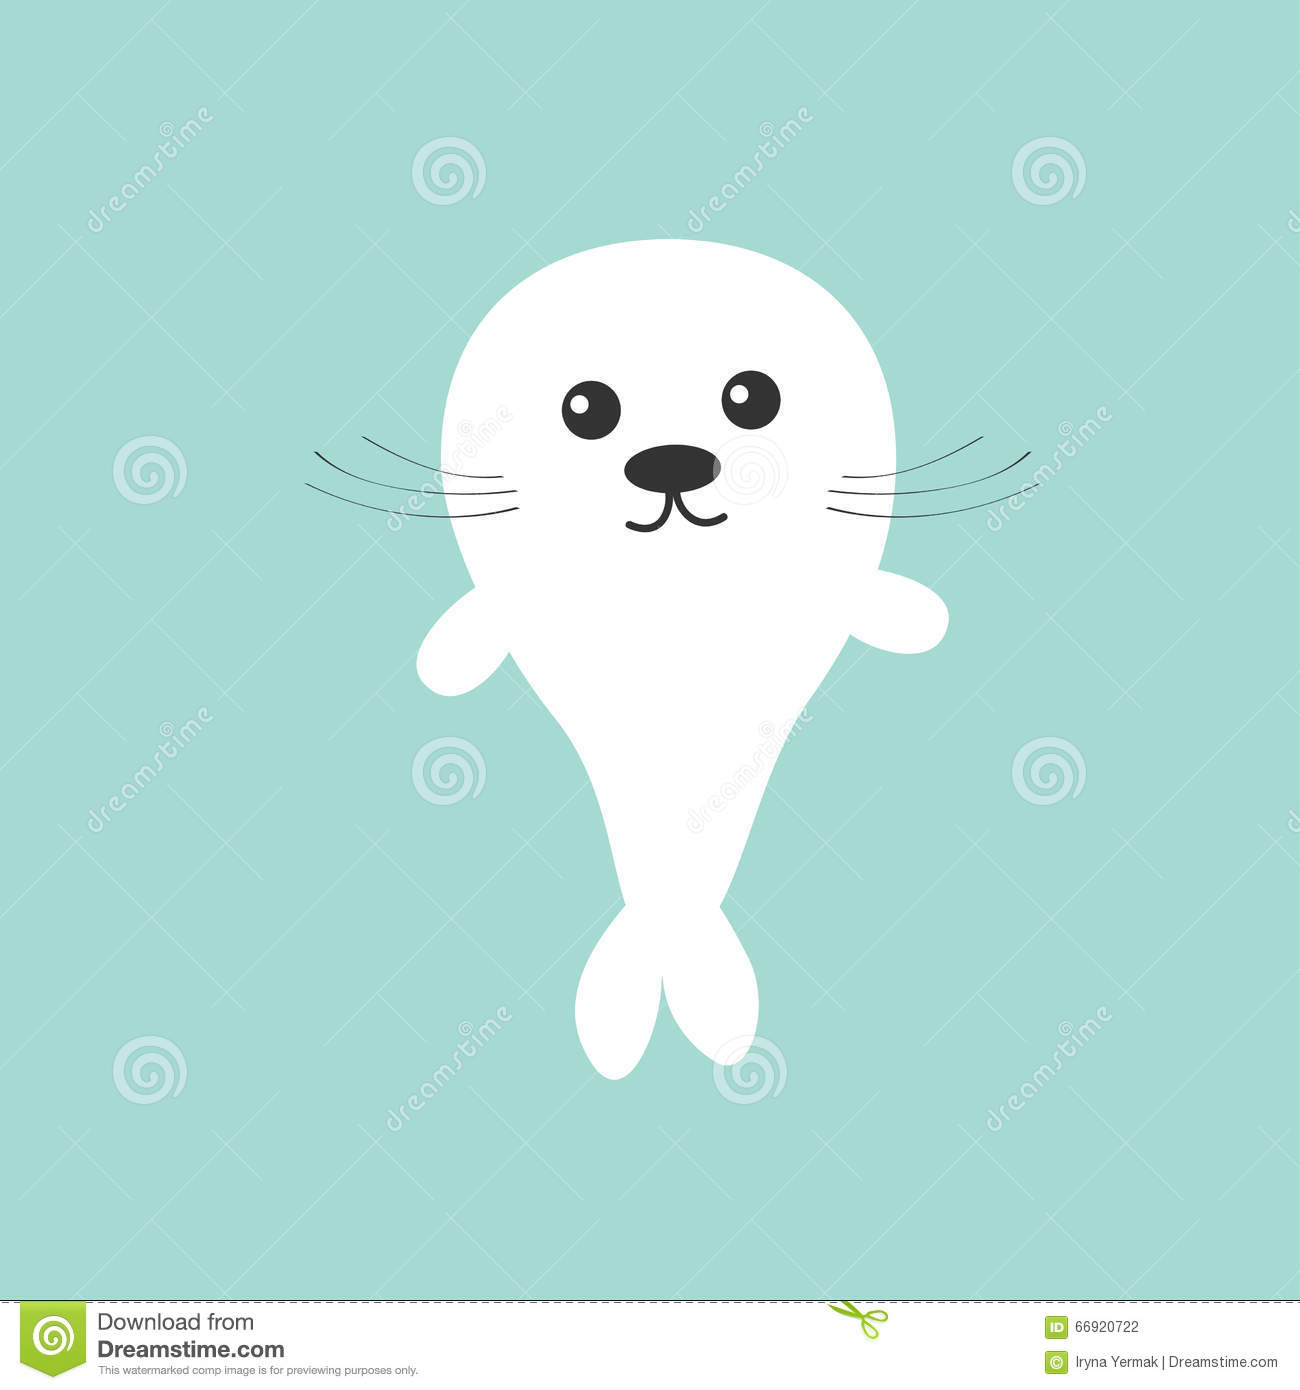 Character Design Background : Seal pup baby harp cute cartoon character blue